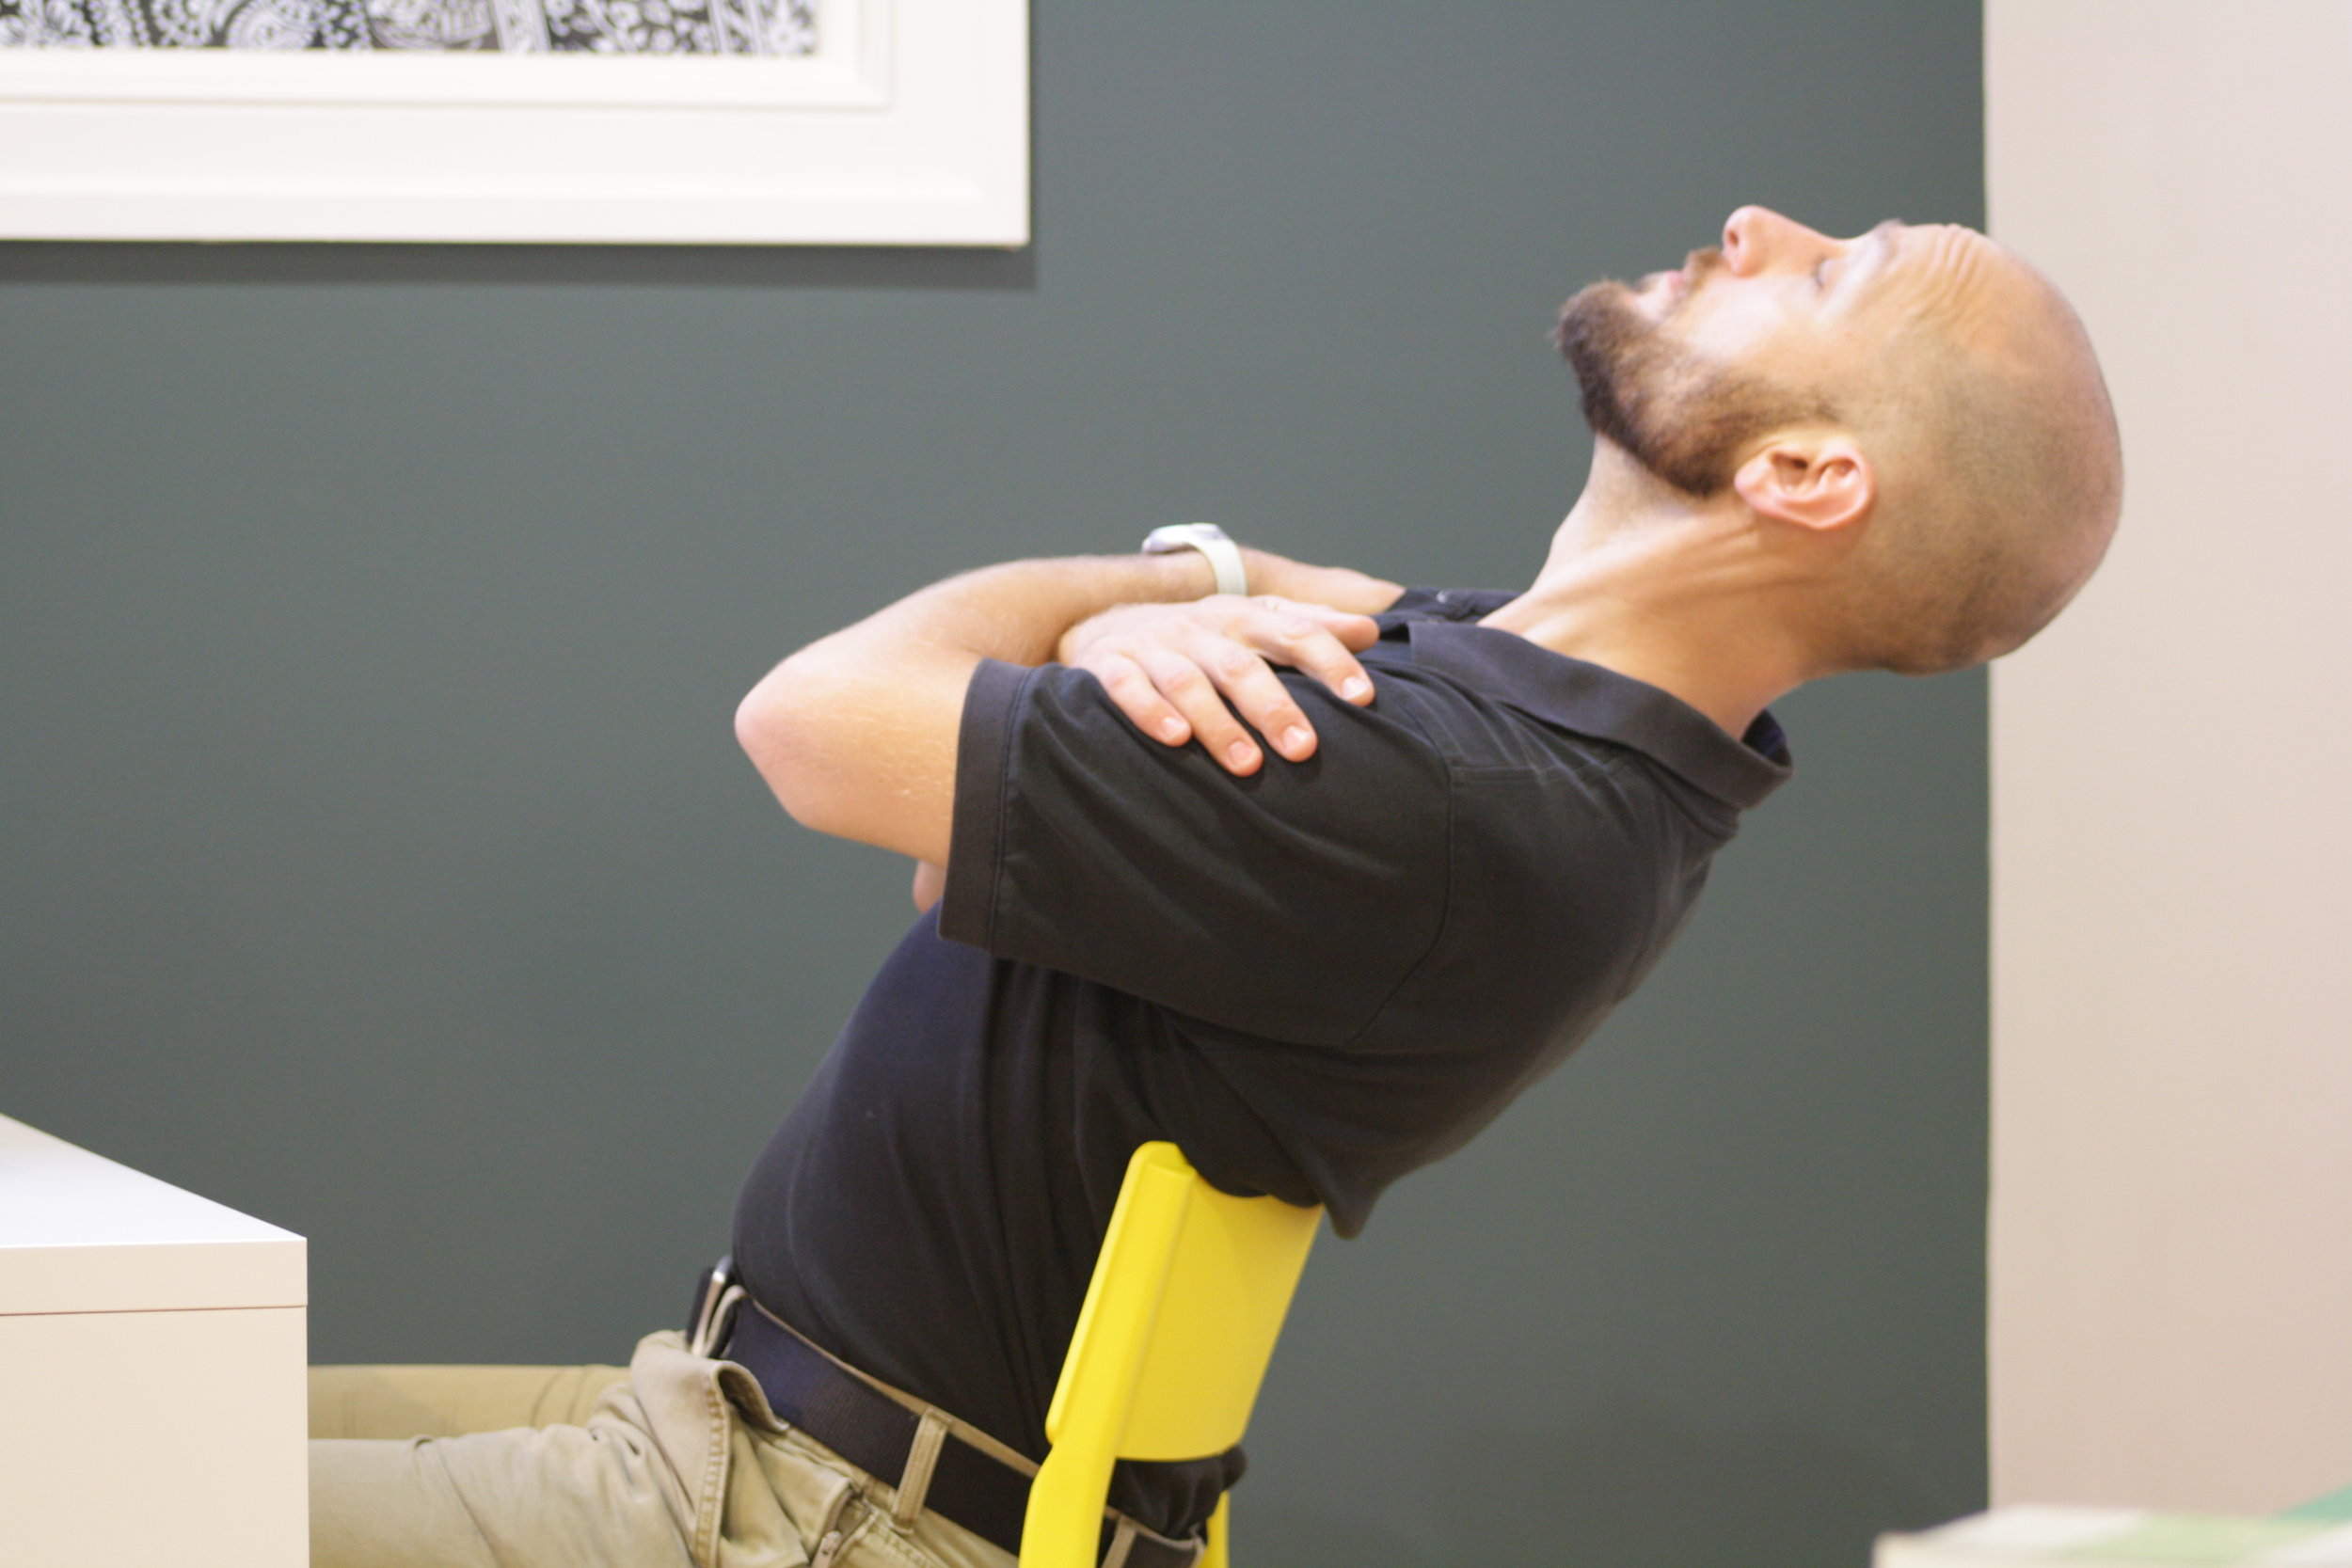 Seated extension over a chair-back can provide a good stretch to those with a tight back.